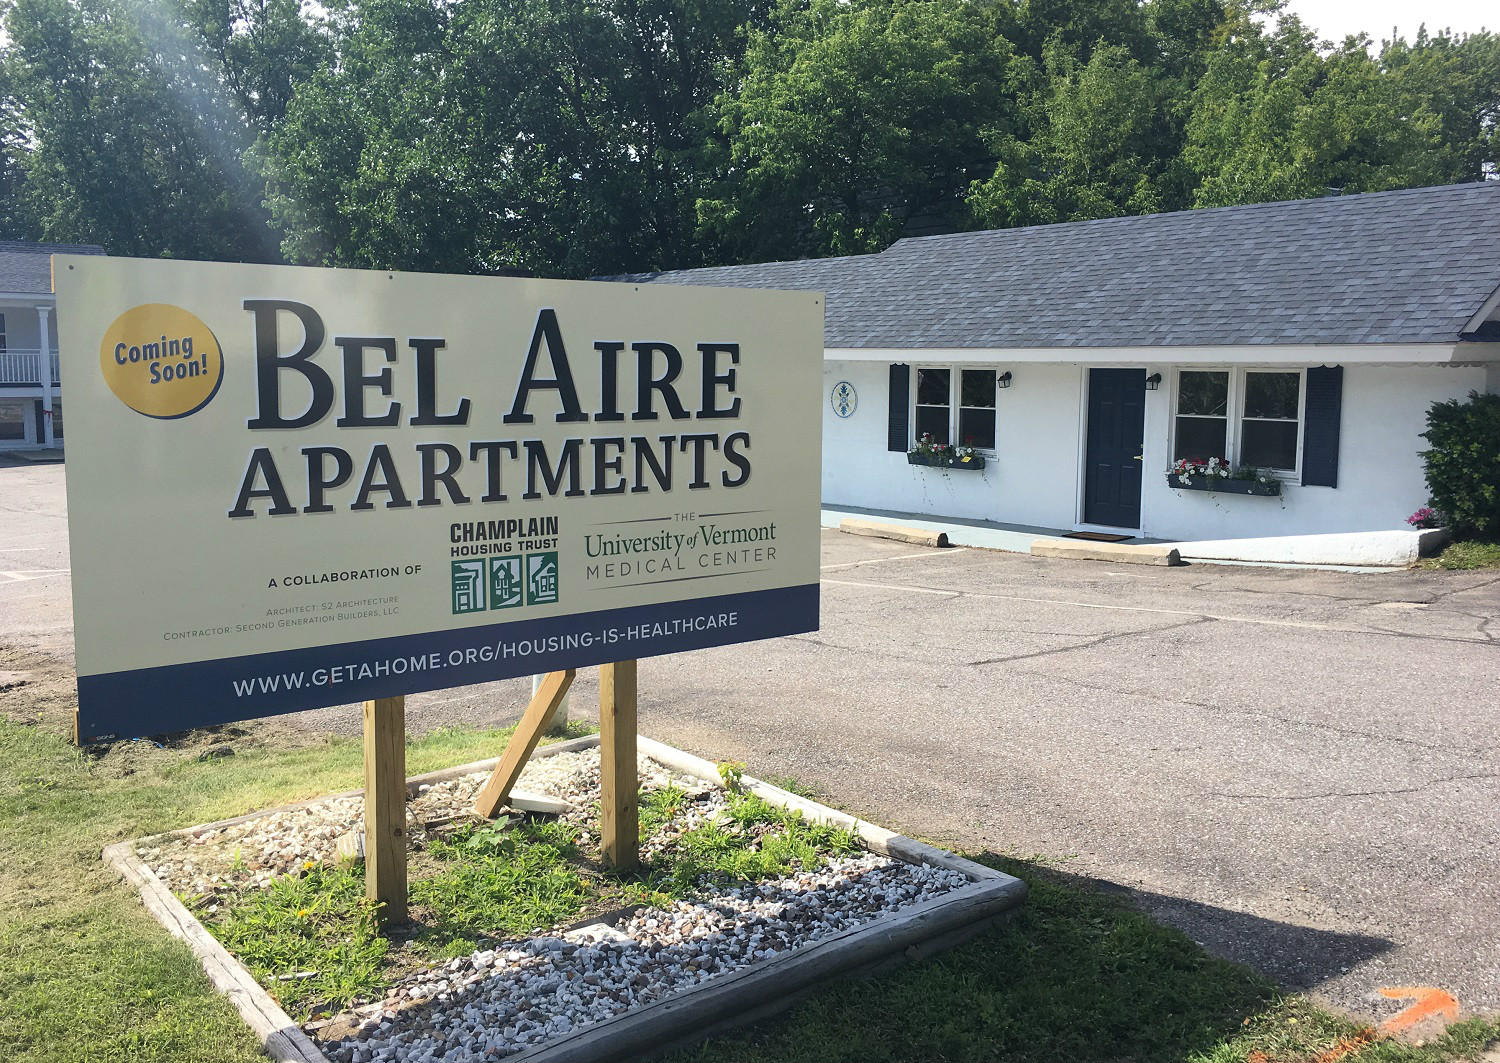 Of Vermont Medical Center The Champlain Housing Trust Purchased And Renovated A Motel For Use As Housing For People Who Are Chronically Homeless